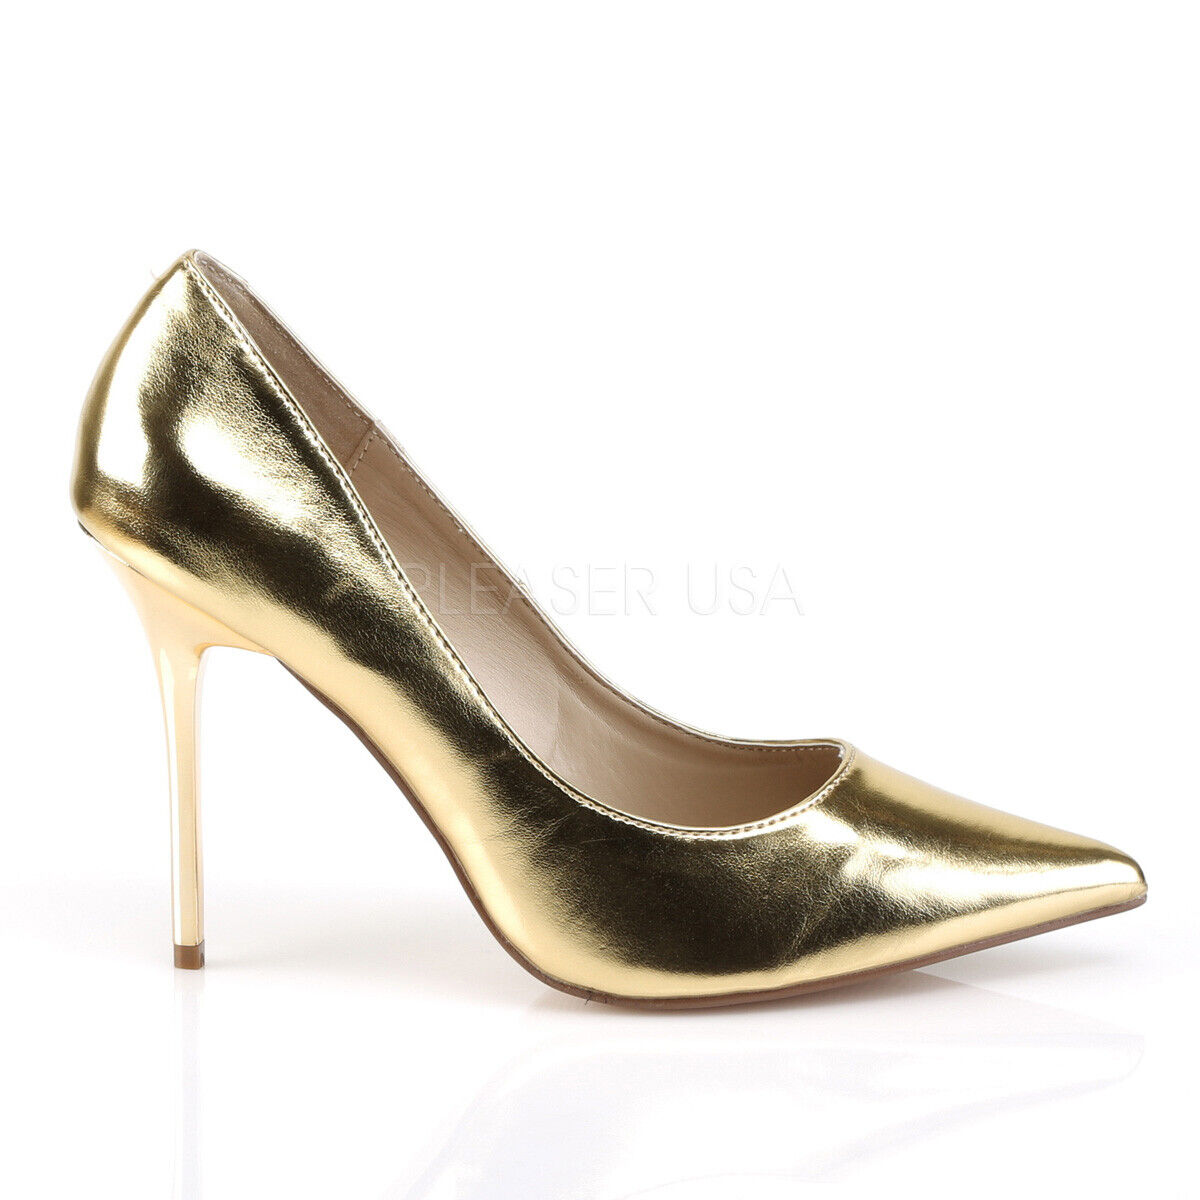 Classique 20 Pointy Toe 4  High Stiletto Heel Pumps chaussures 6 - 16 or